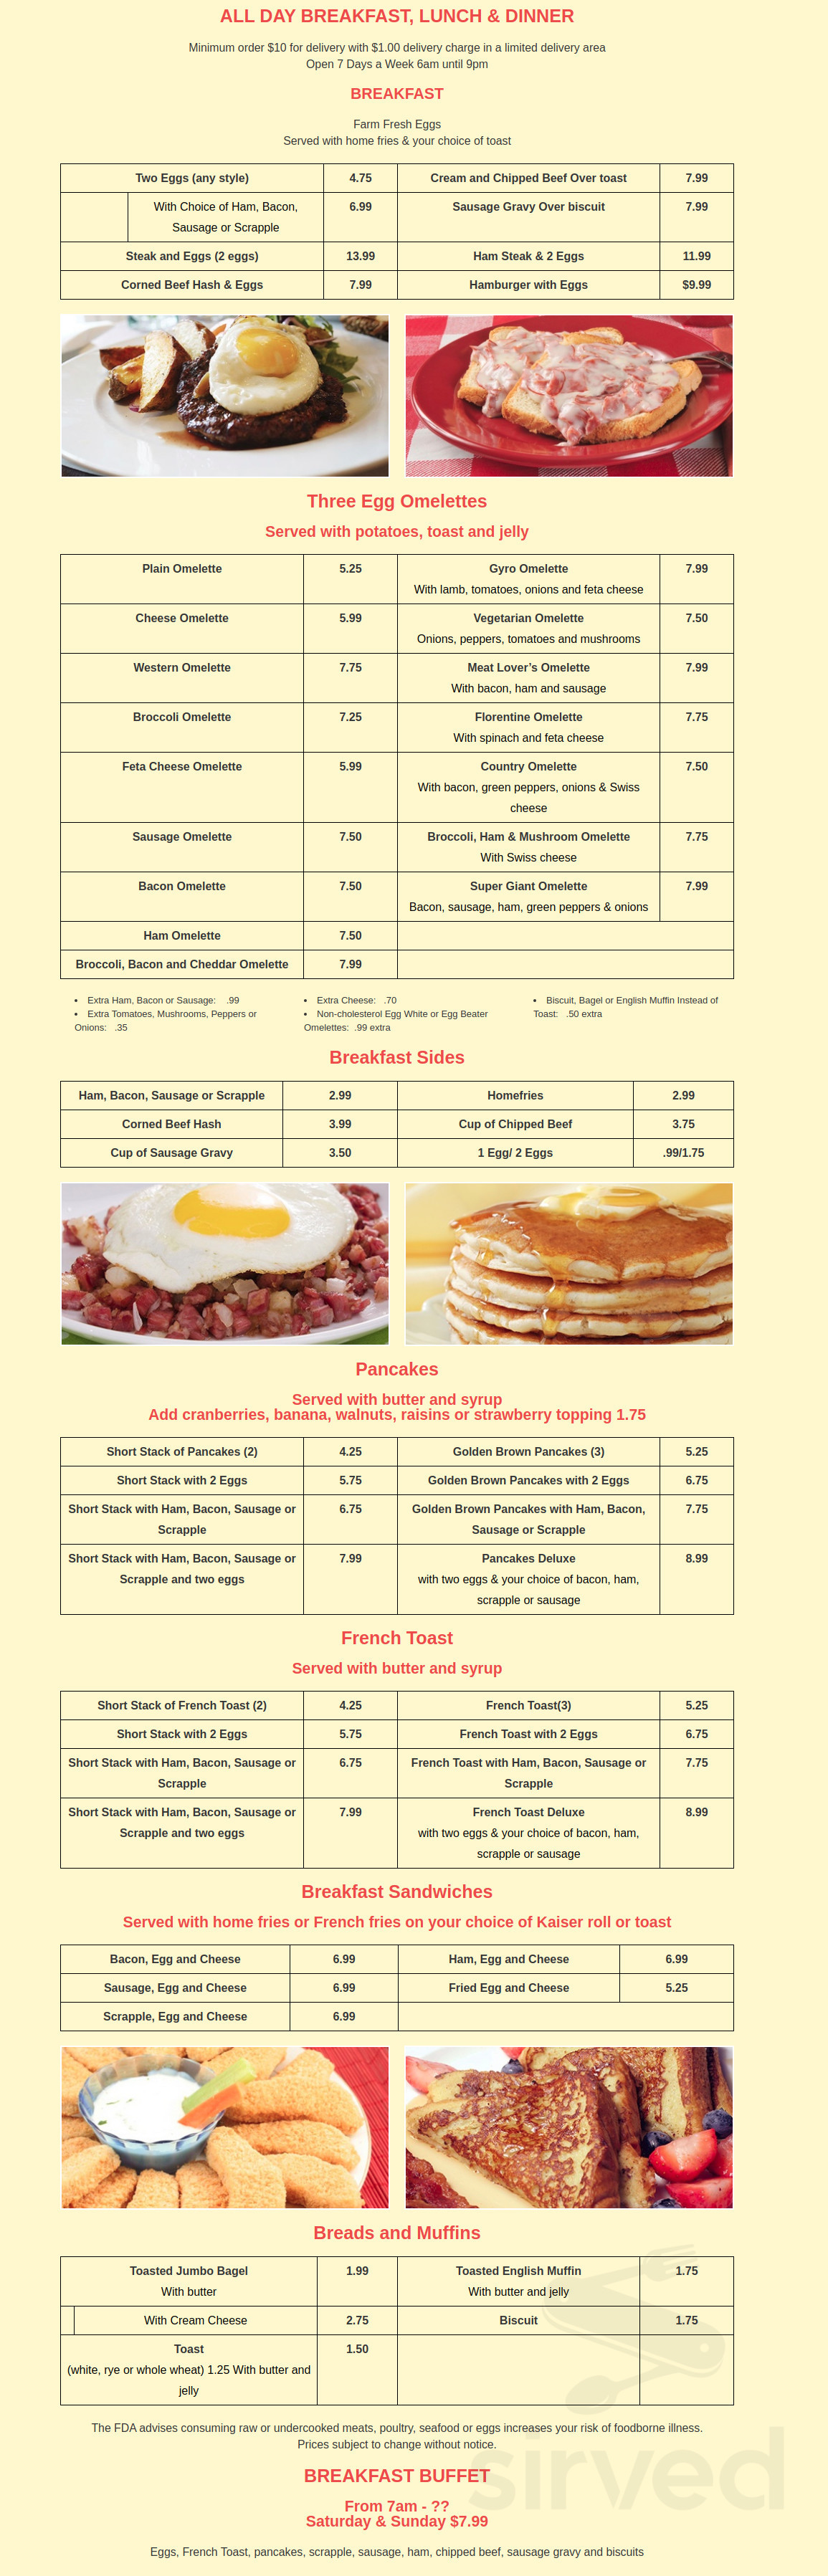 Menu for Country Kitchen in Millsboro, Delaware, USA